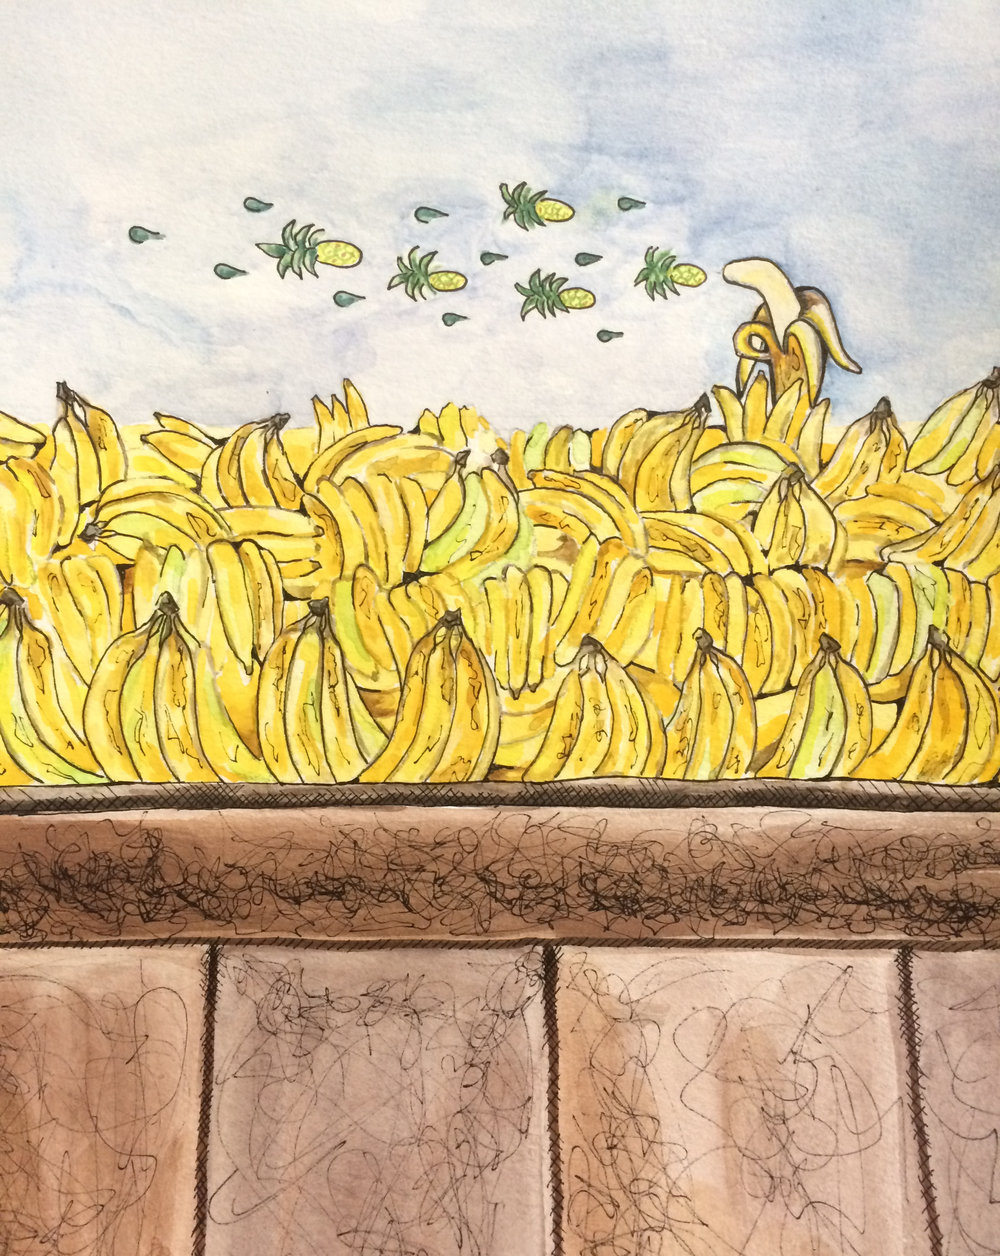 Deanna Dorangrichia, Banana Bullets and Pineapple Grenades (gouache on paper)